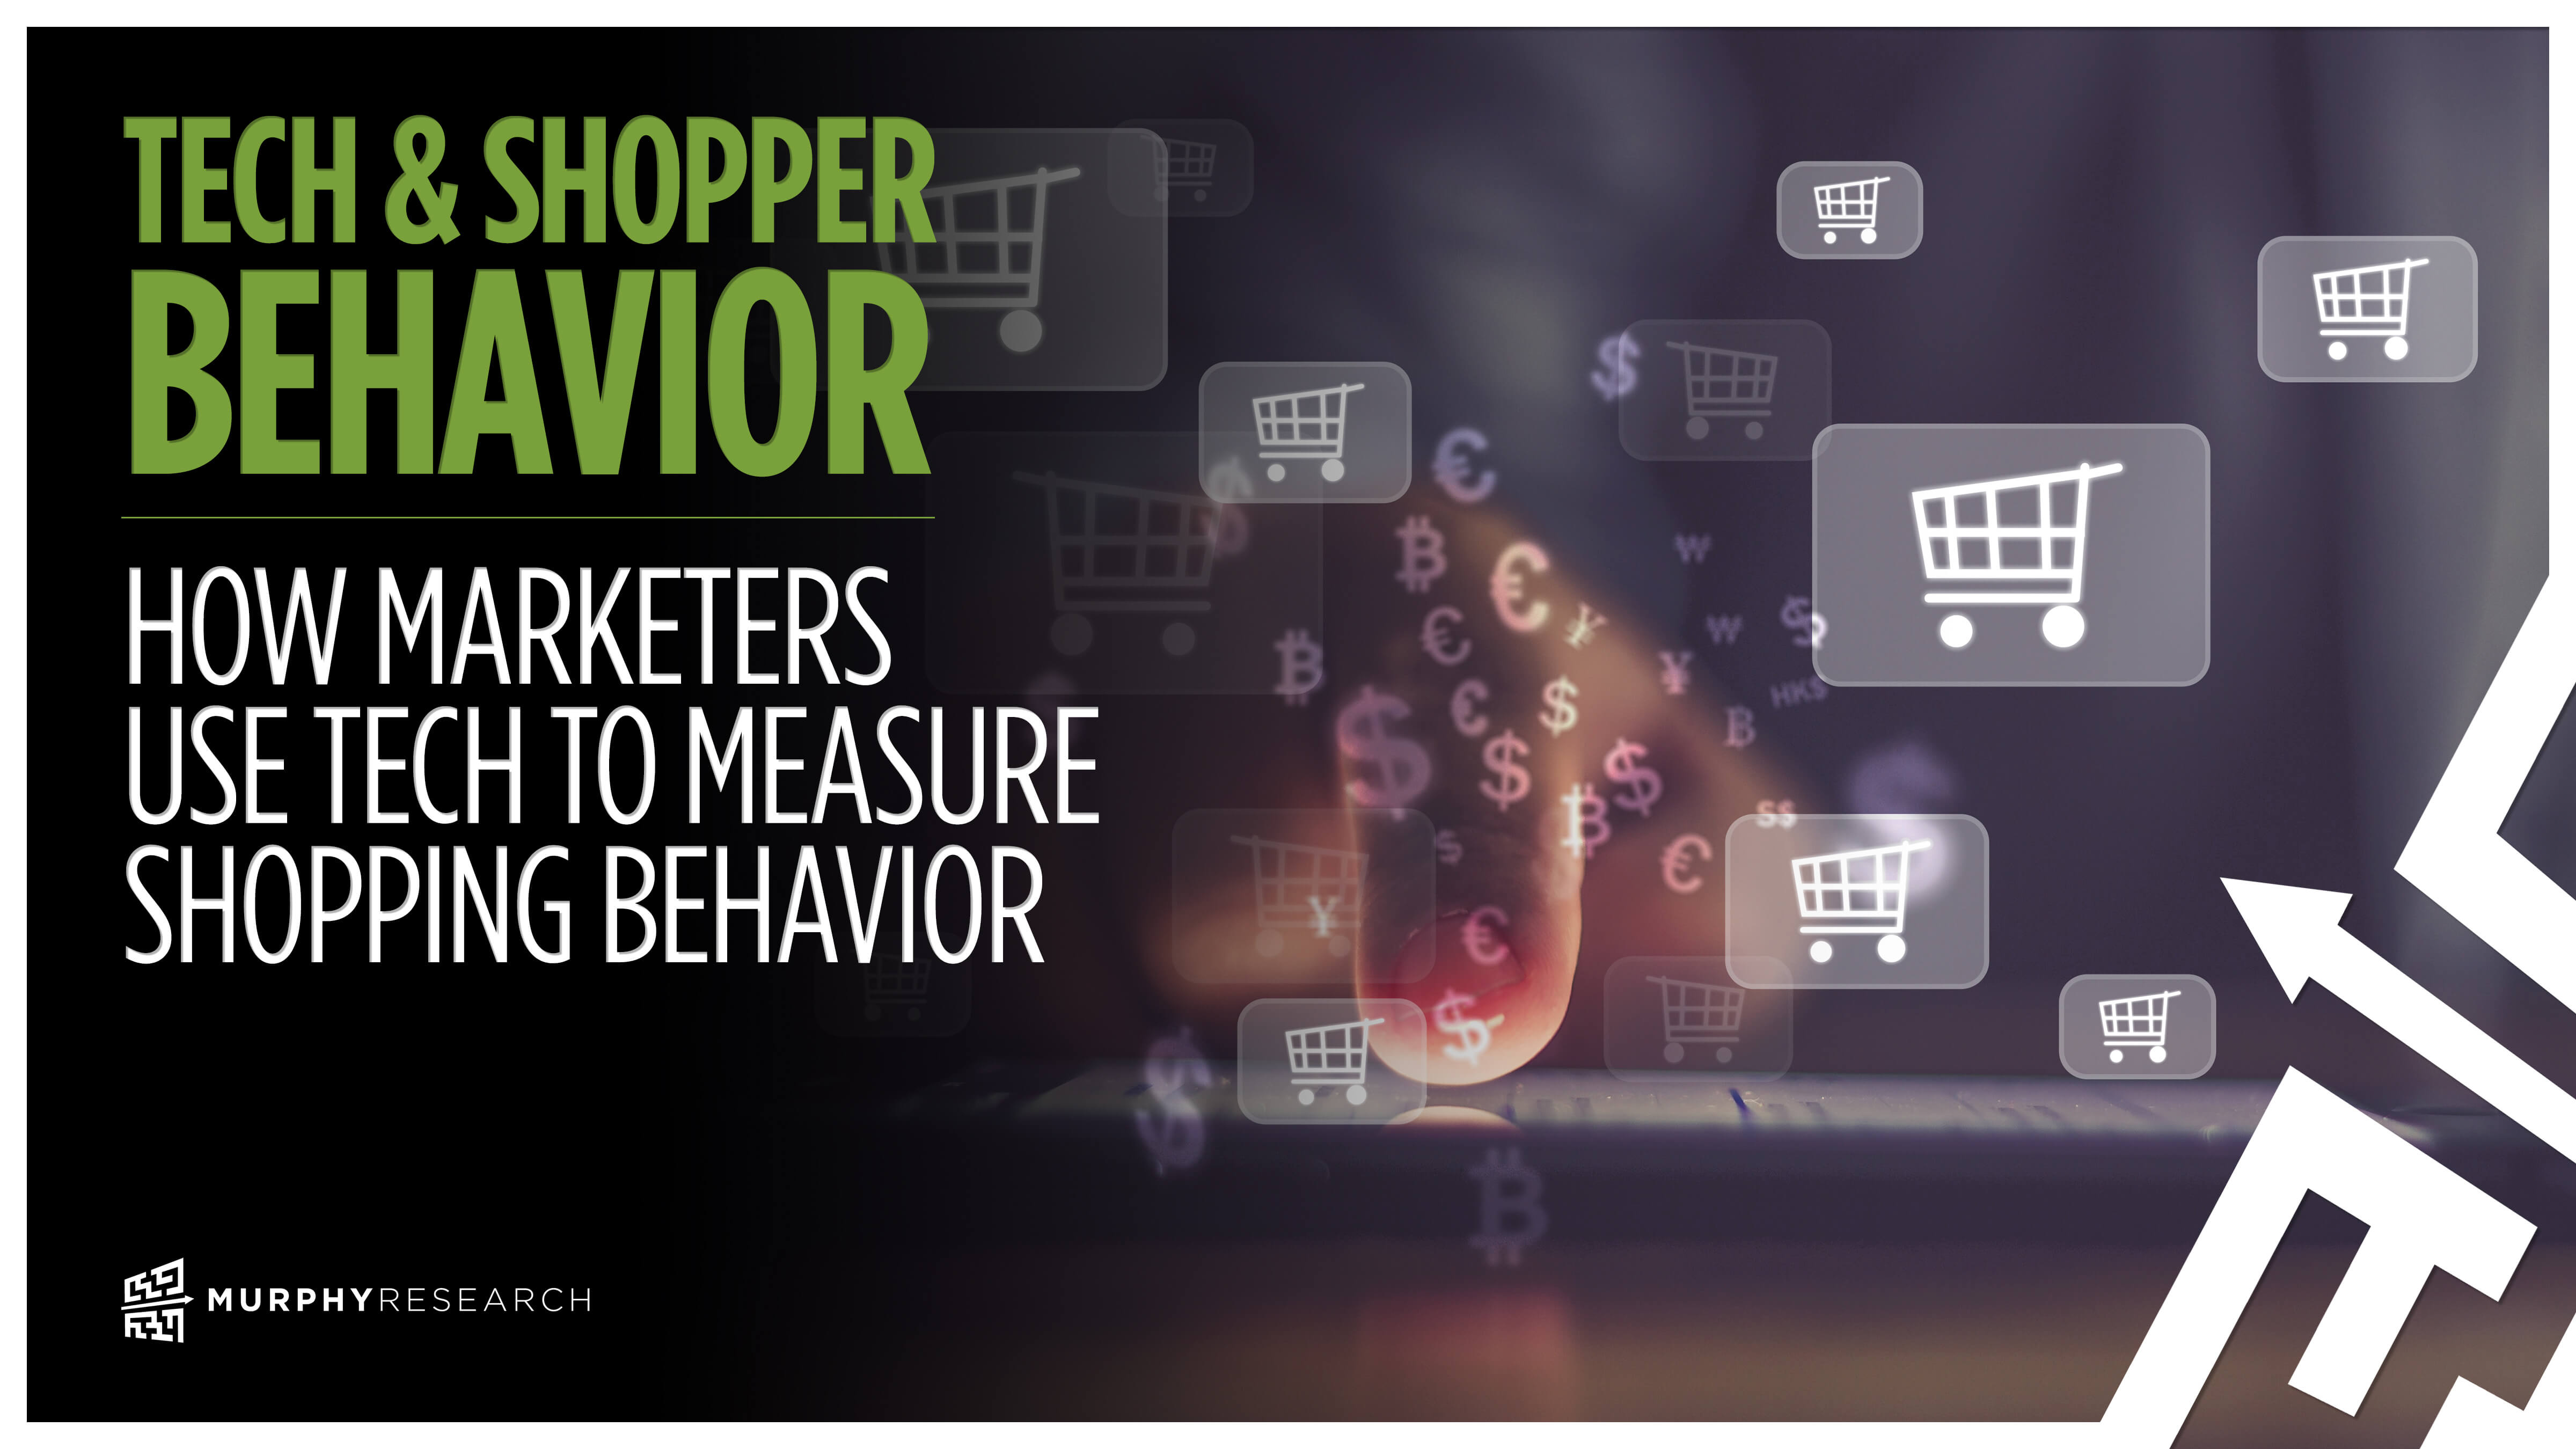 How Marketers Use Tech to Measure Shopping Behavior